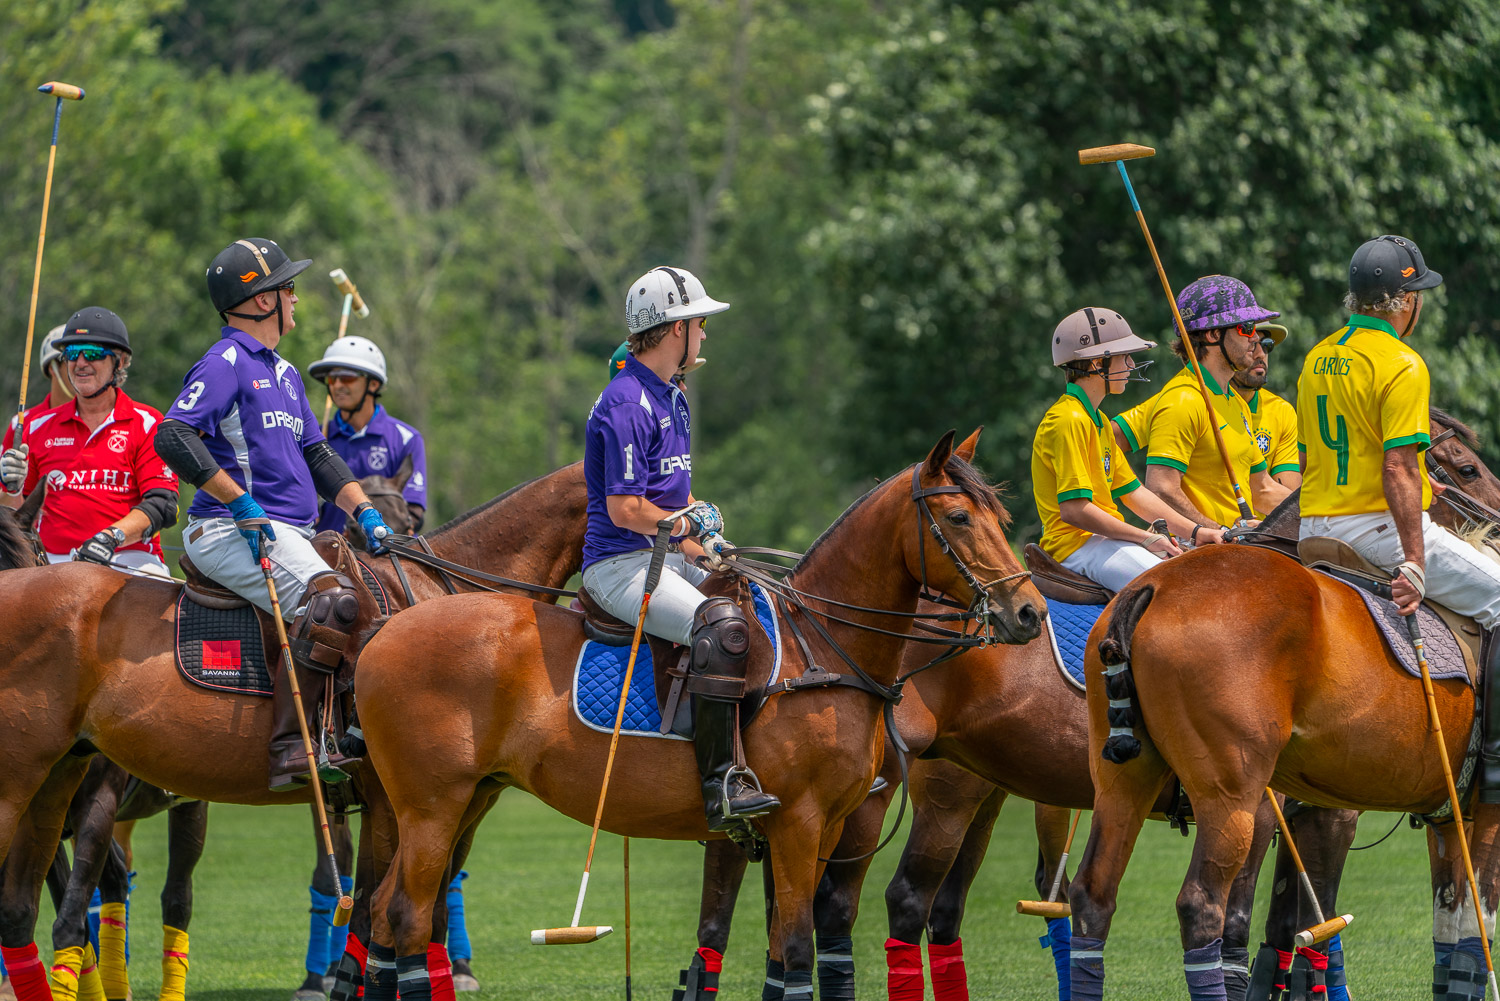 Polo players and their ponies at the start of Mashomack polo match.jpg